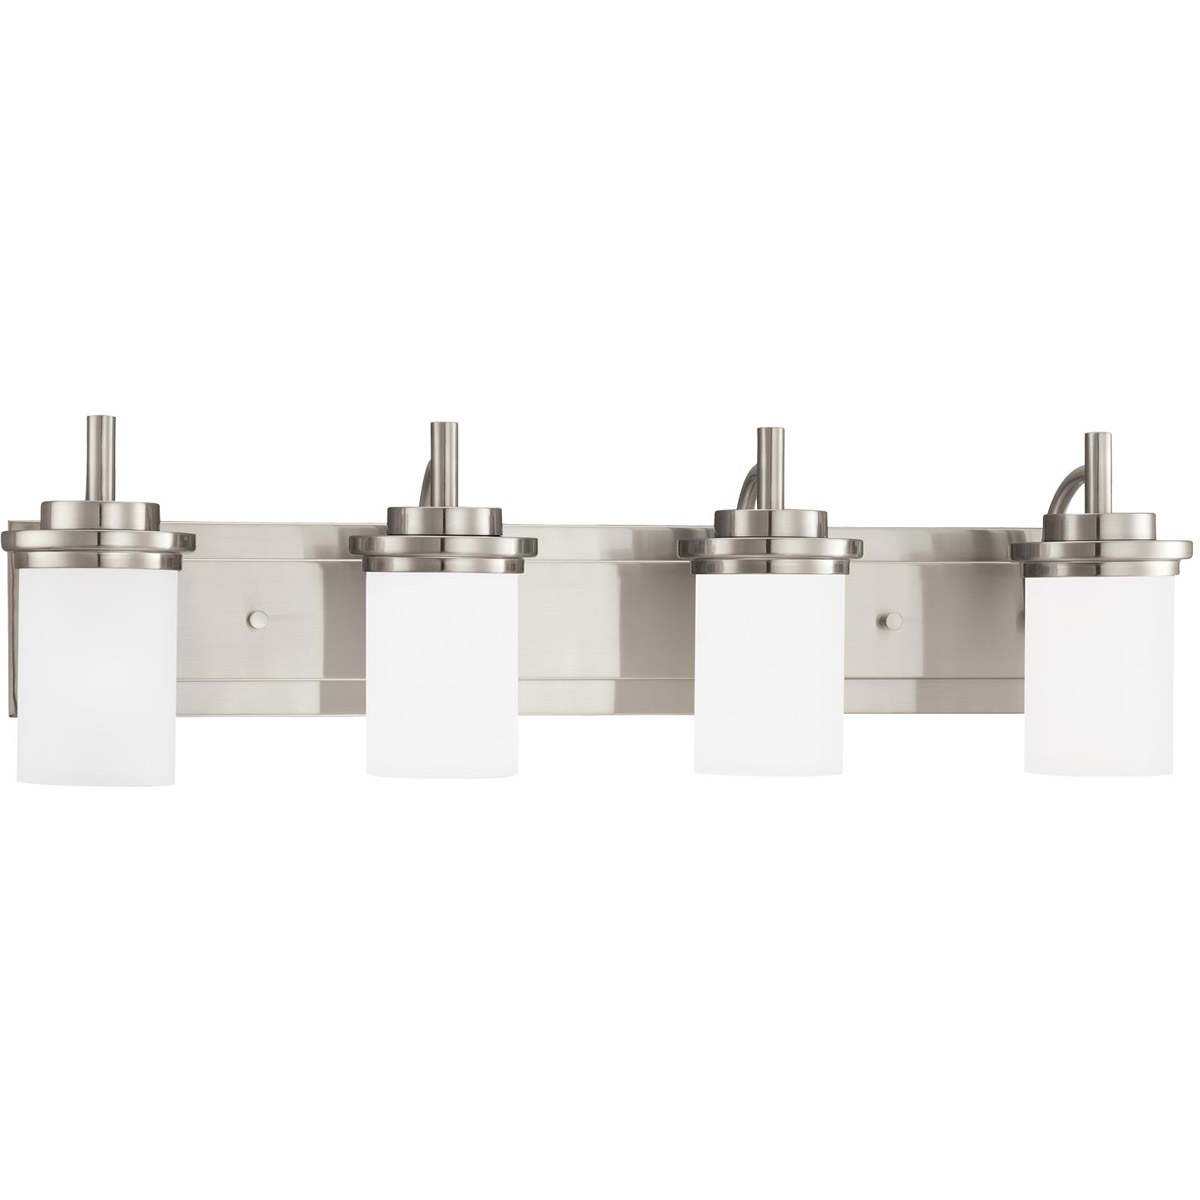 Sea Gull Lighting Winnetka 4 Light Bath Vanity in Brushed Nickel 44663-962